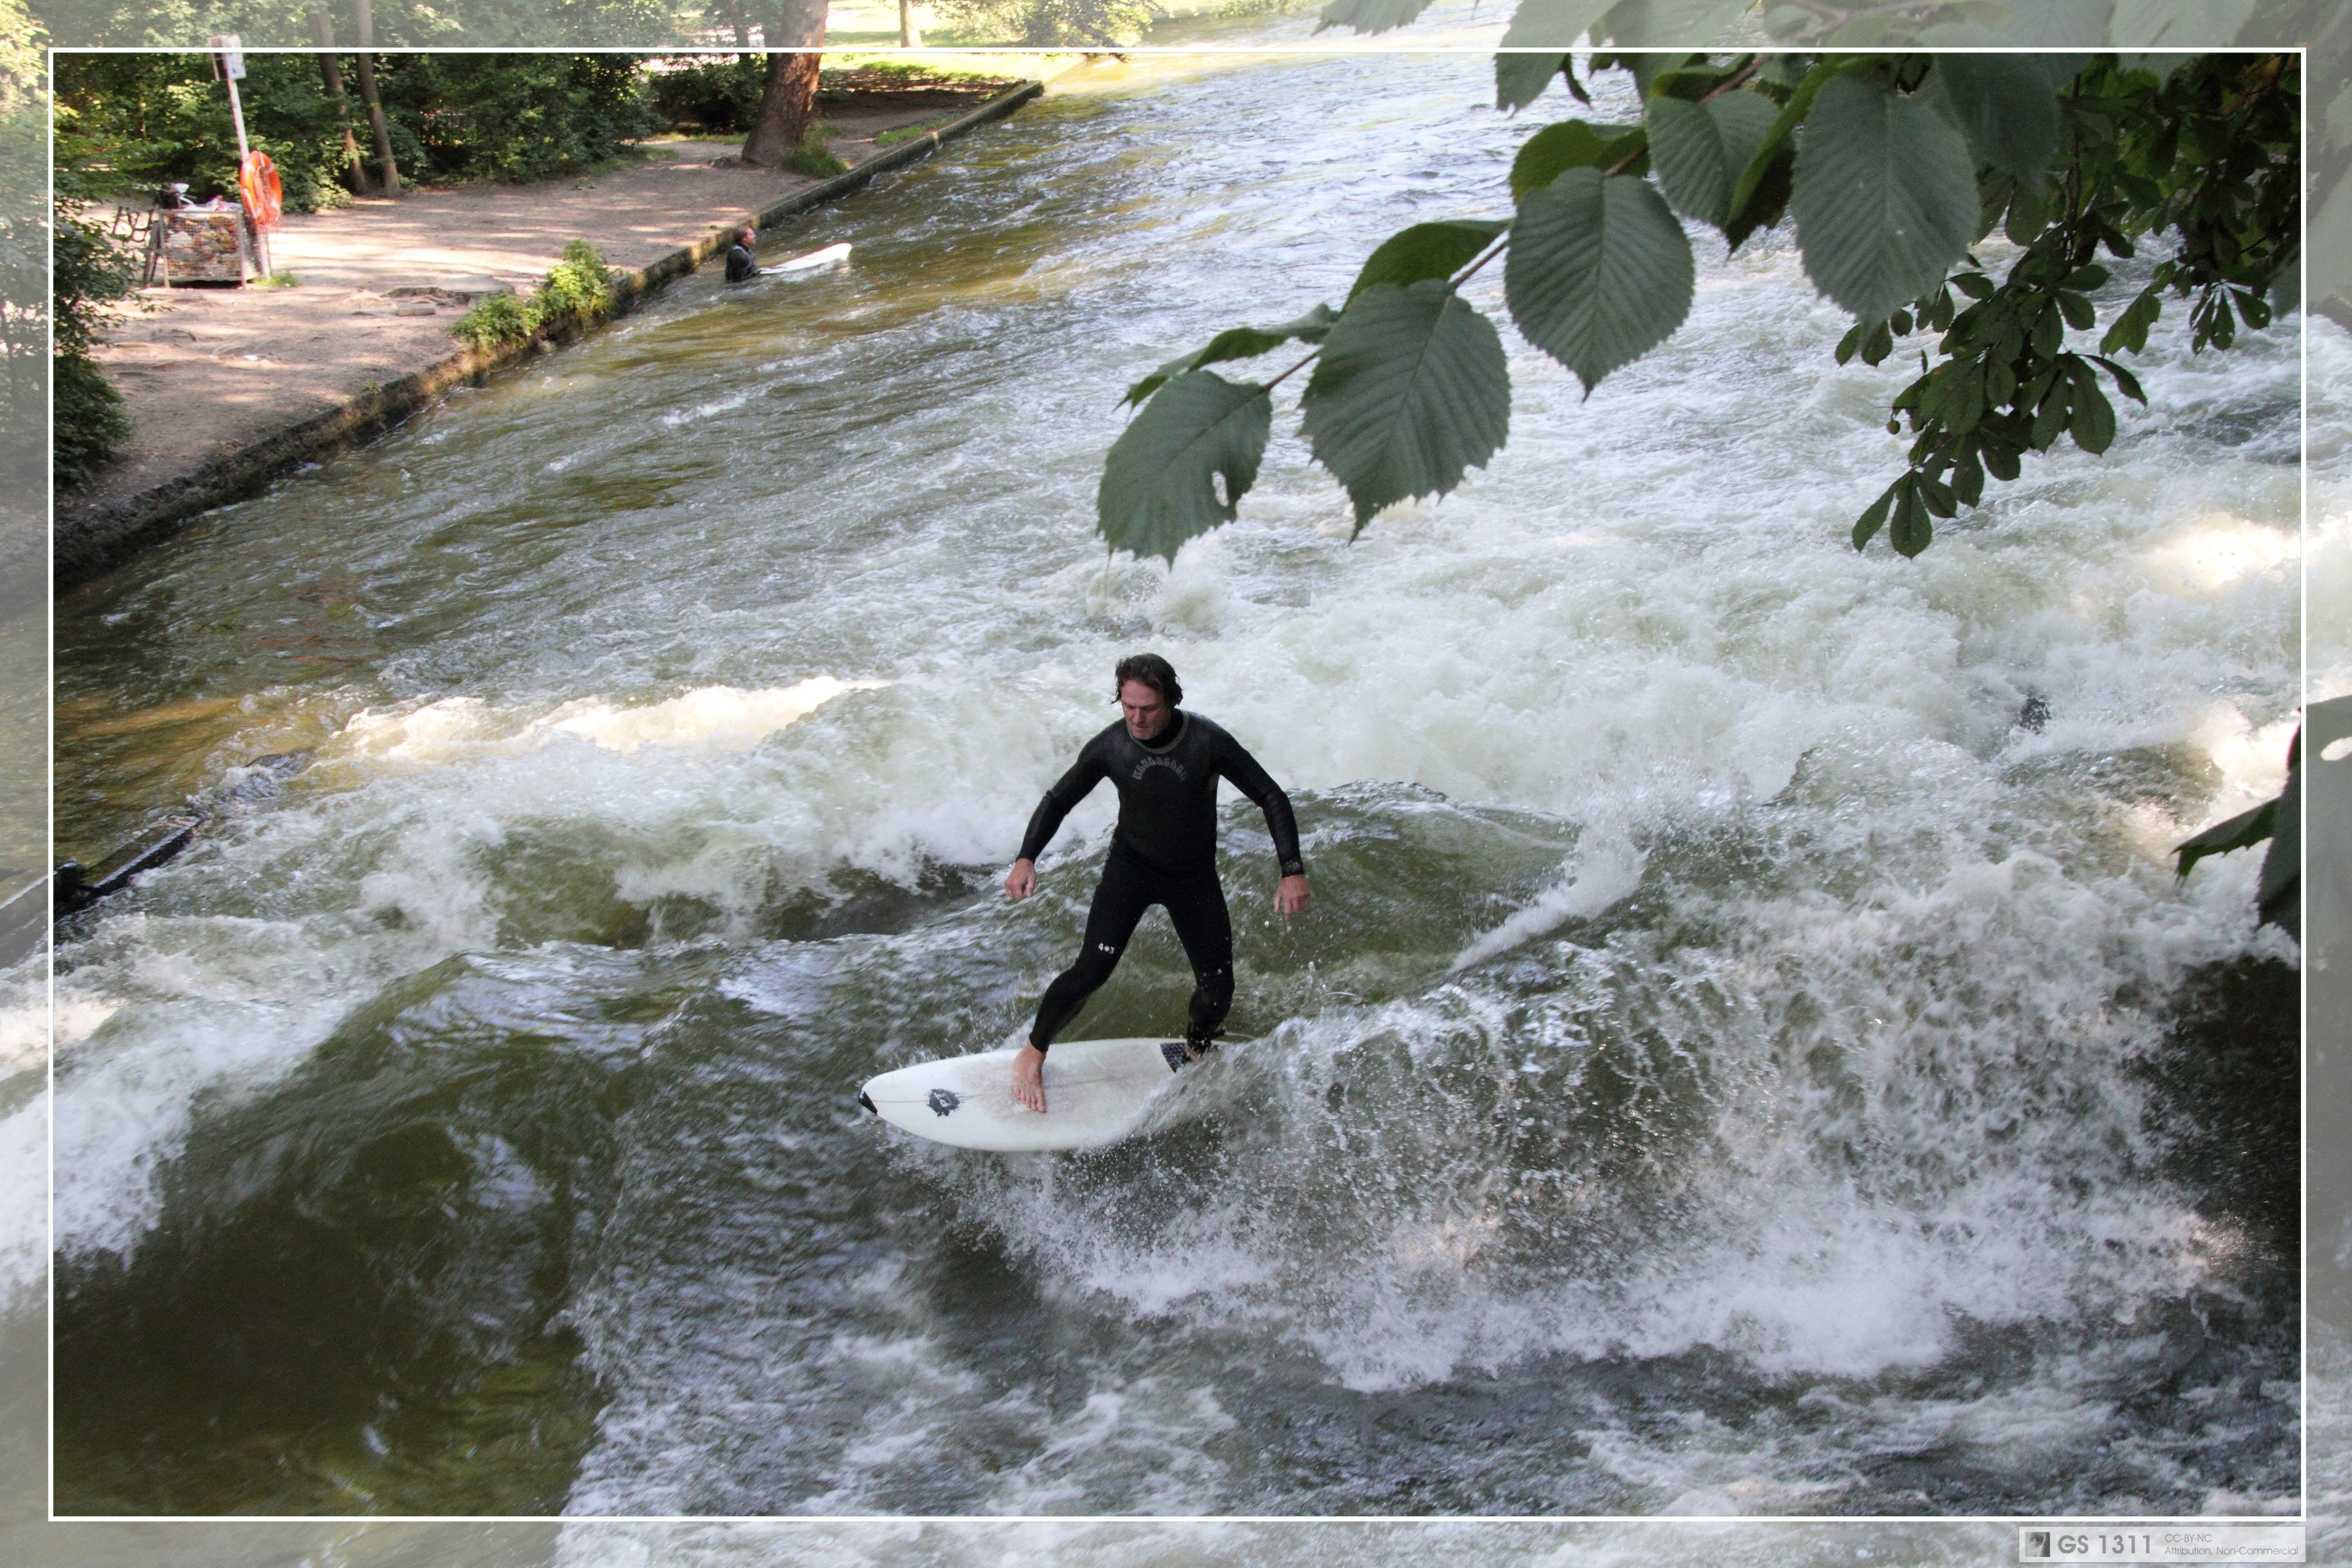 Eisbach Surfer (02) | Surfer riding the Eisbach standing wav… | Flickr - Photo Sharing!